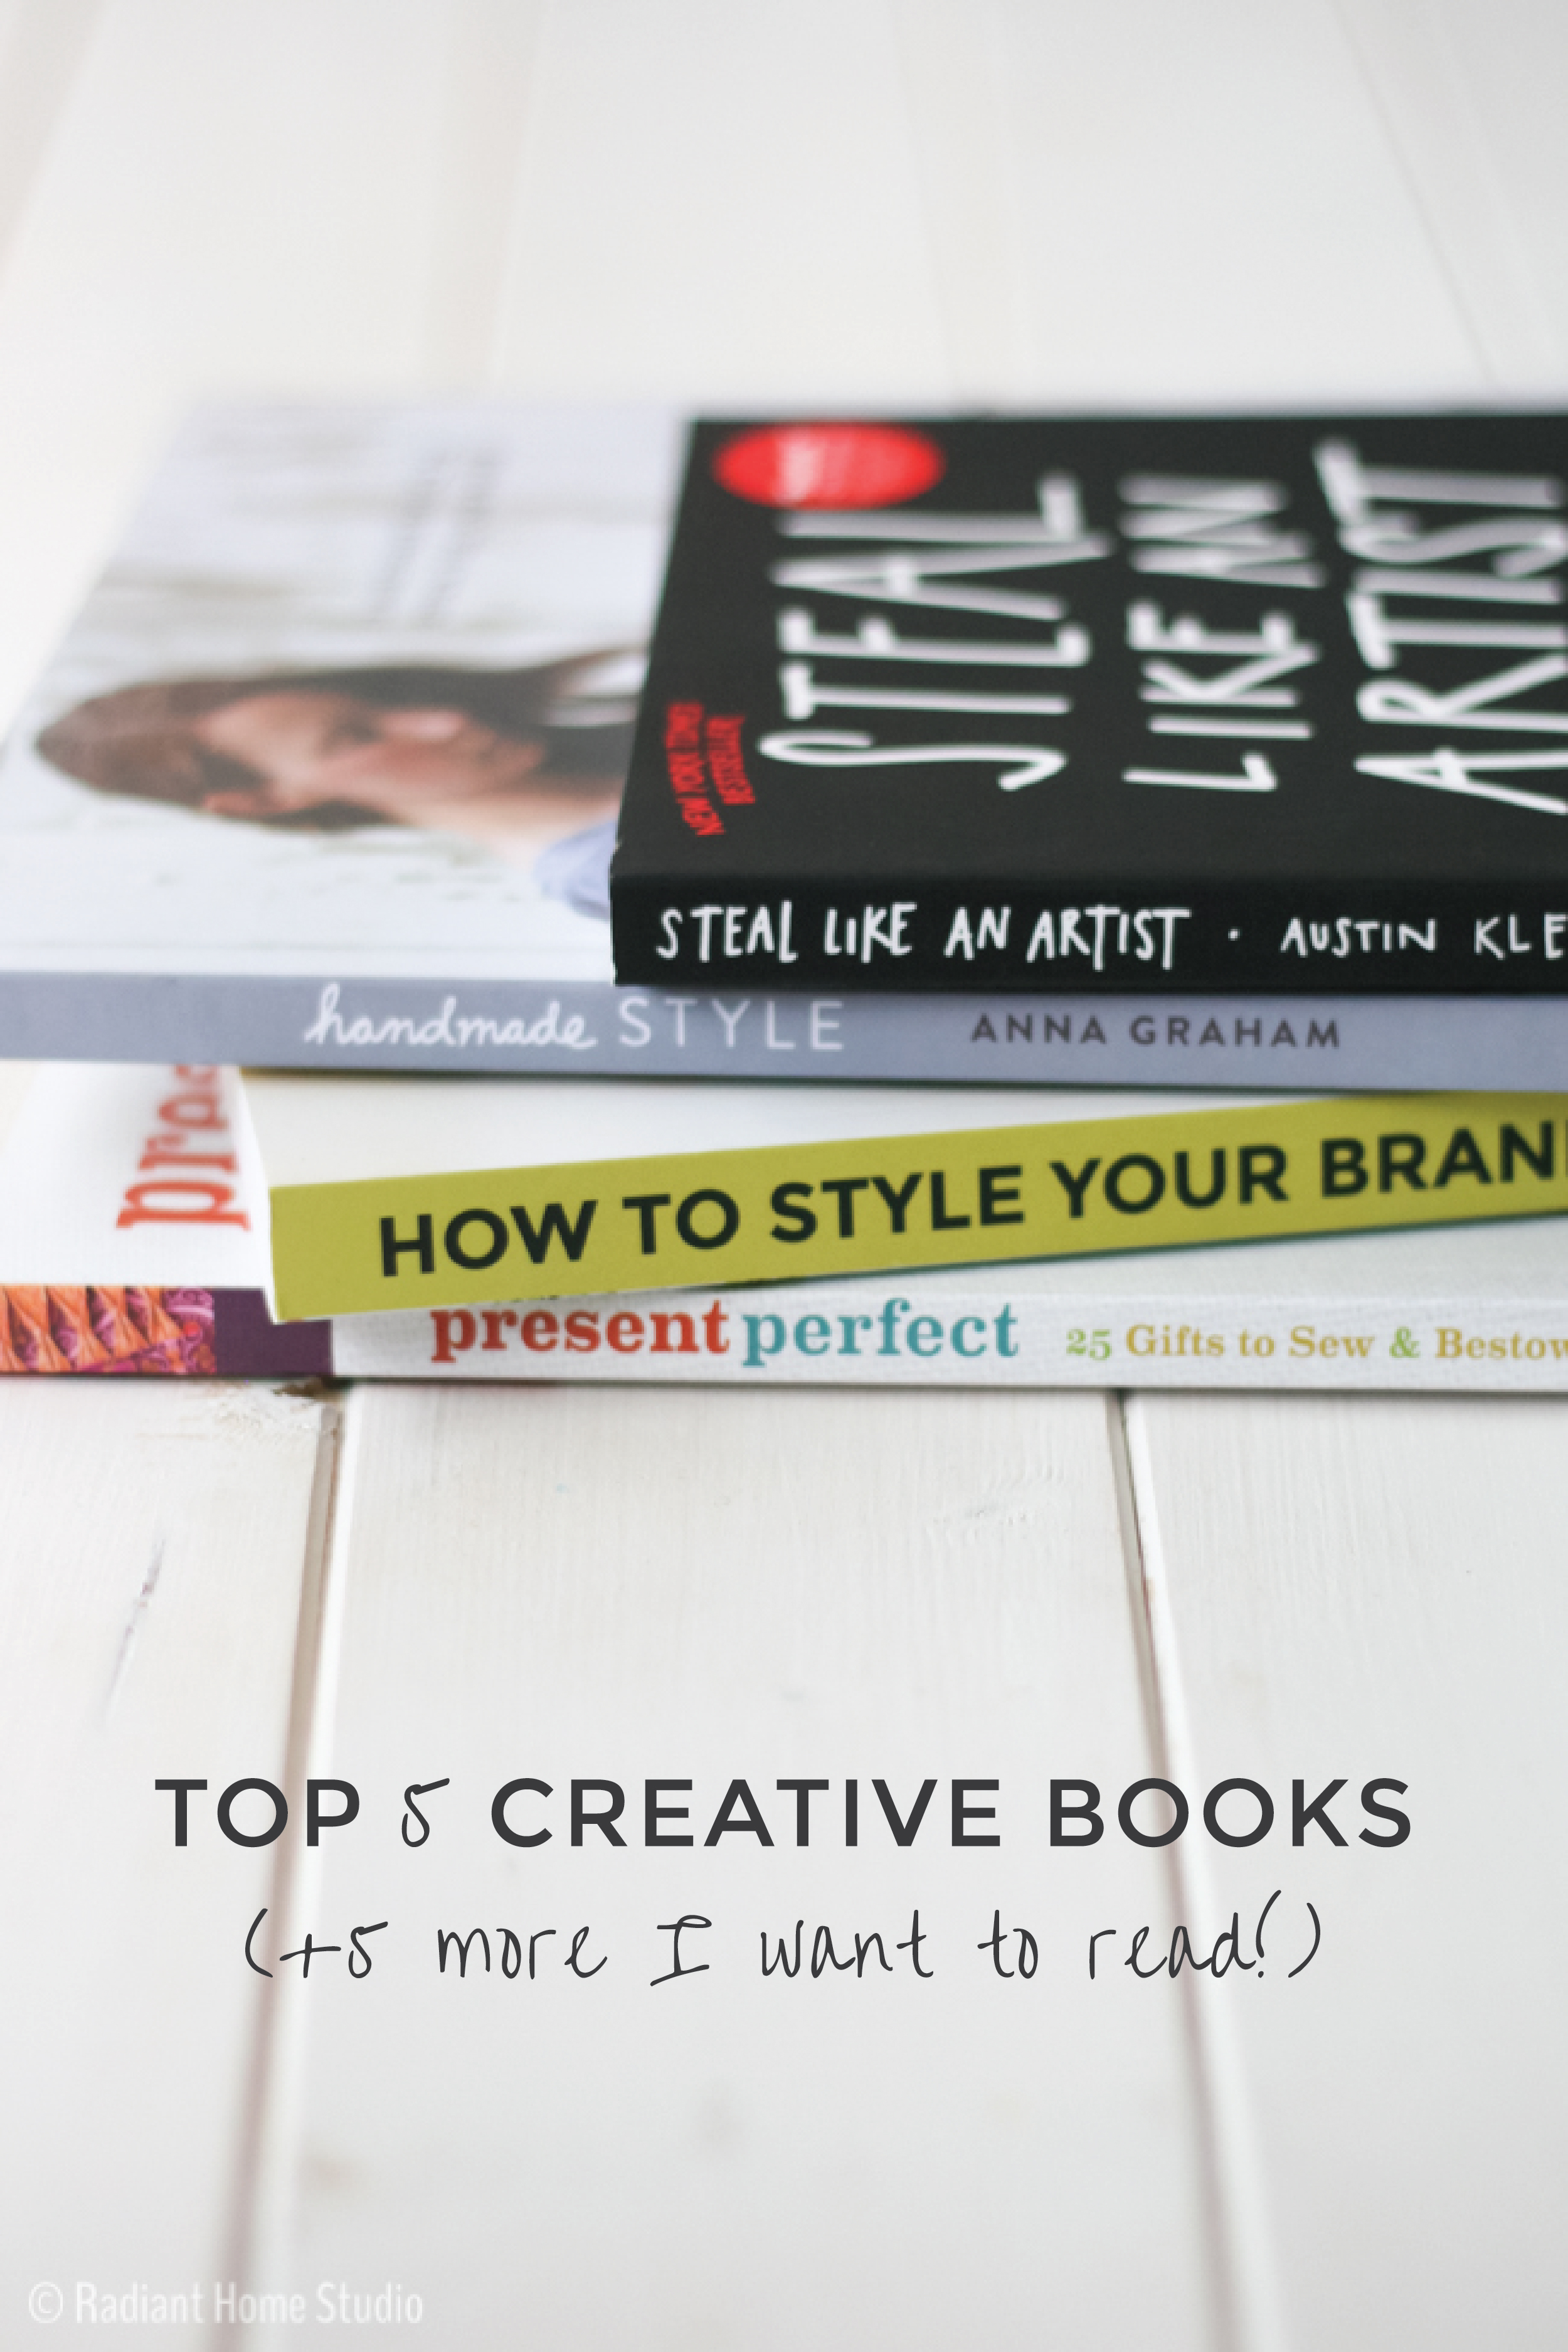 Creative Books| Sewing & Design Books Gift Guide | Radiant Home Studio